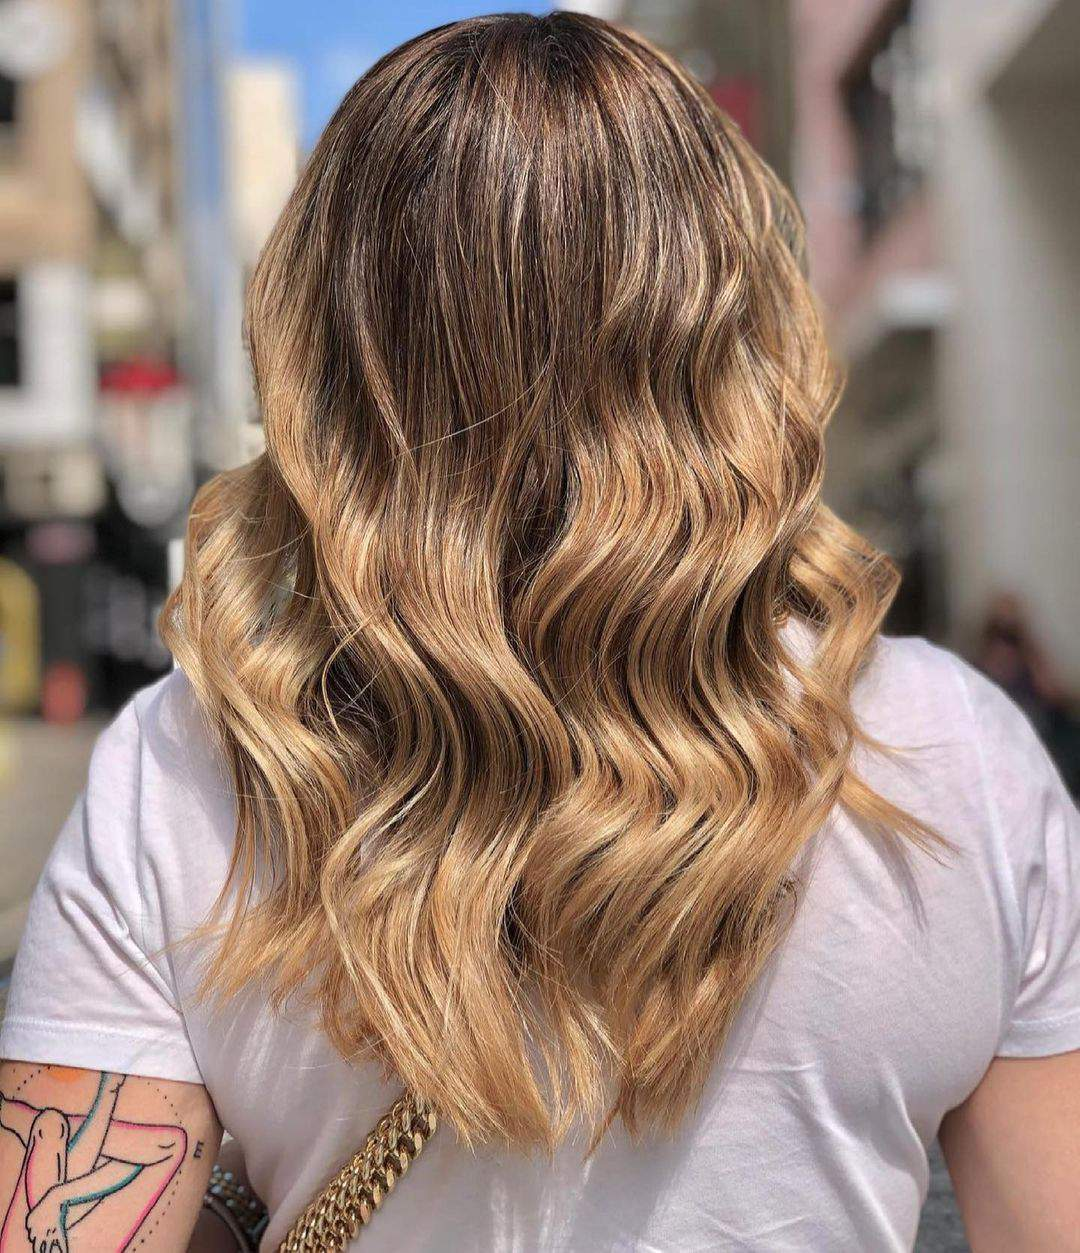 40+ Awesome Hairstyles For Girls With Long Hair images 1